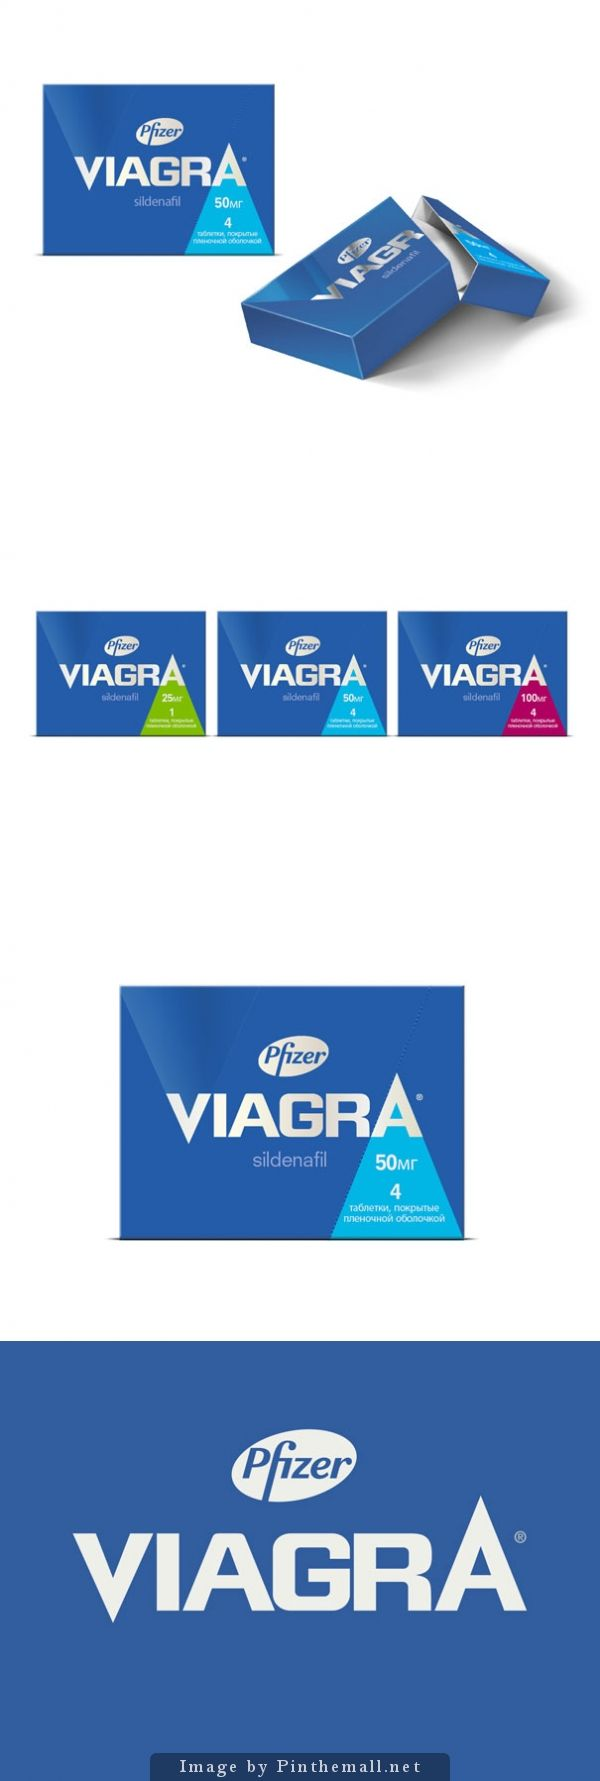 What was viagra designed for